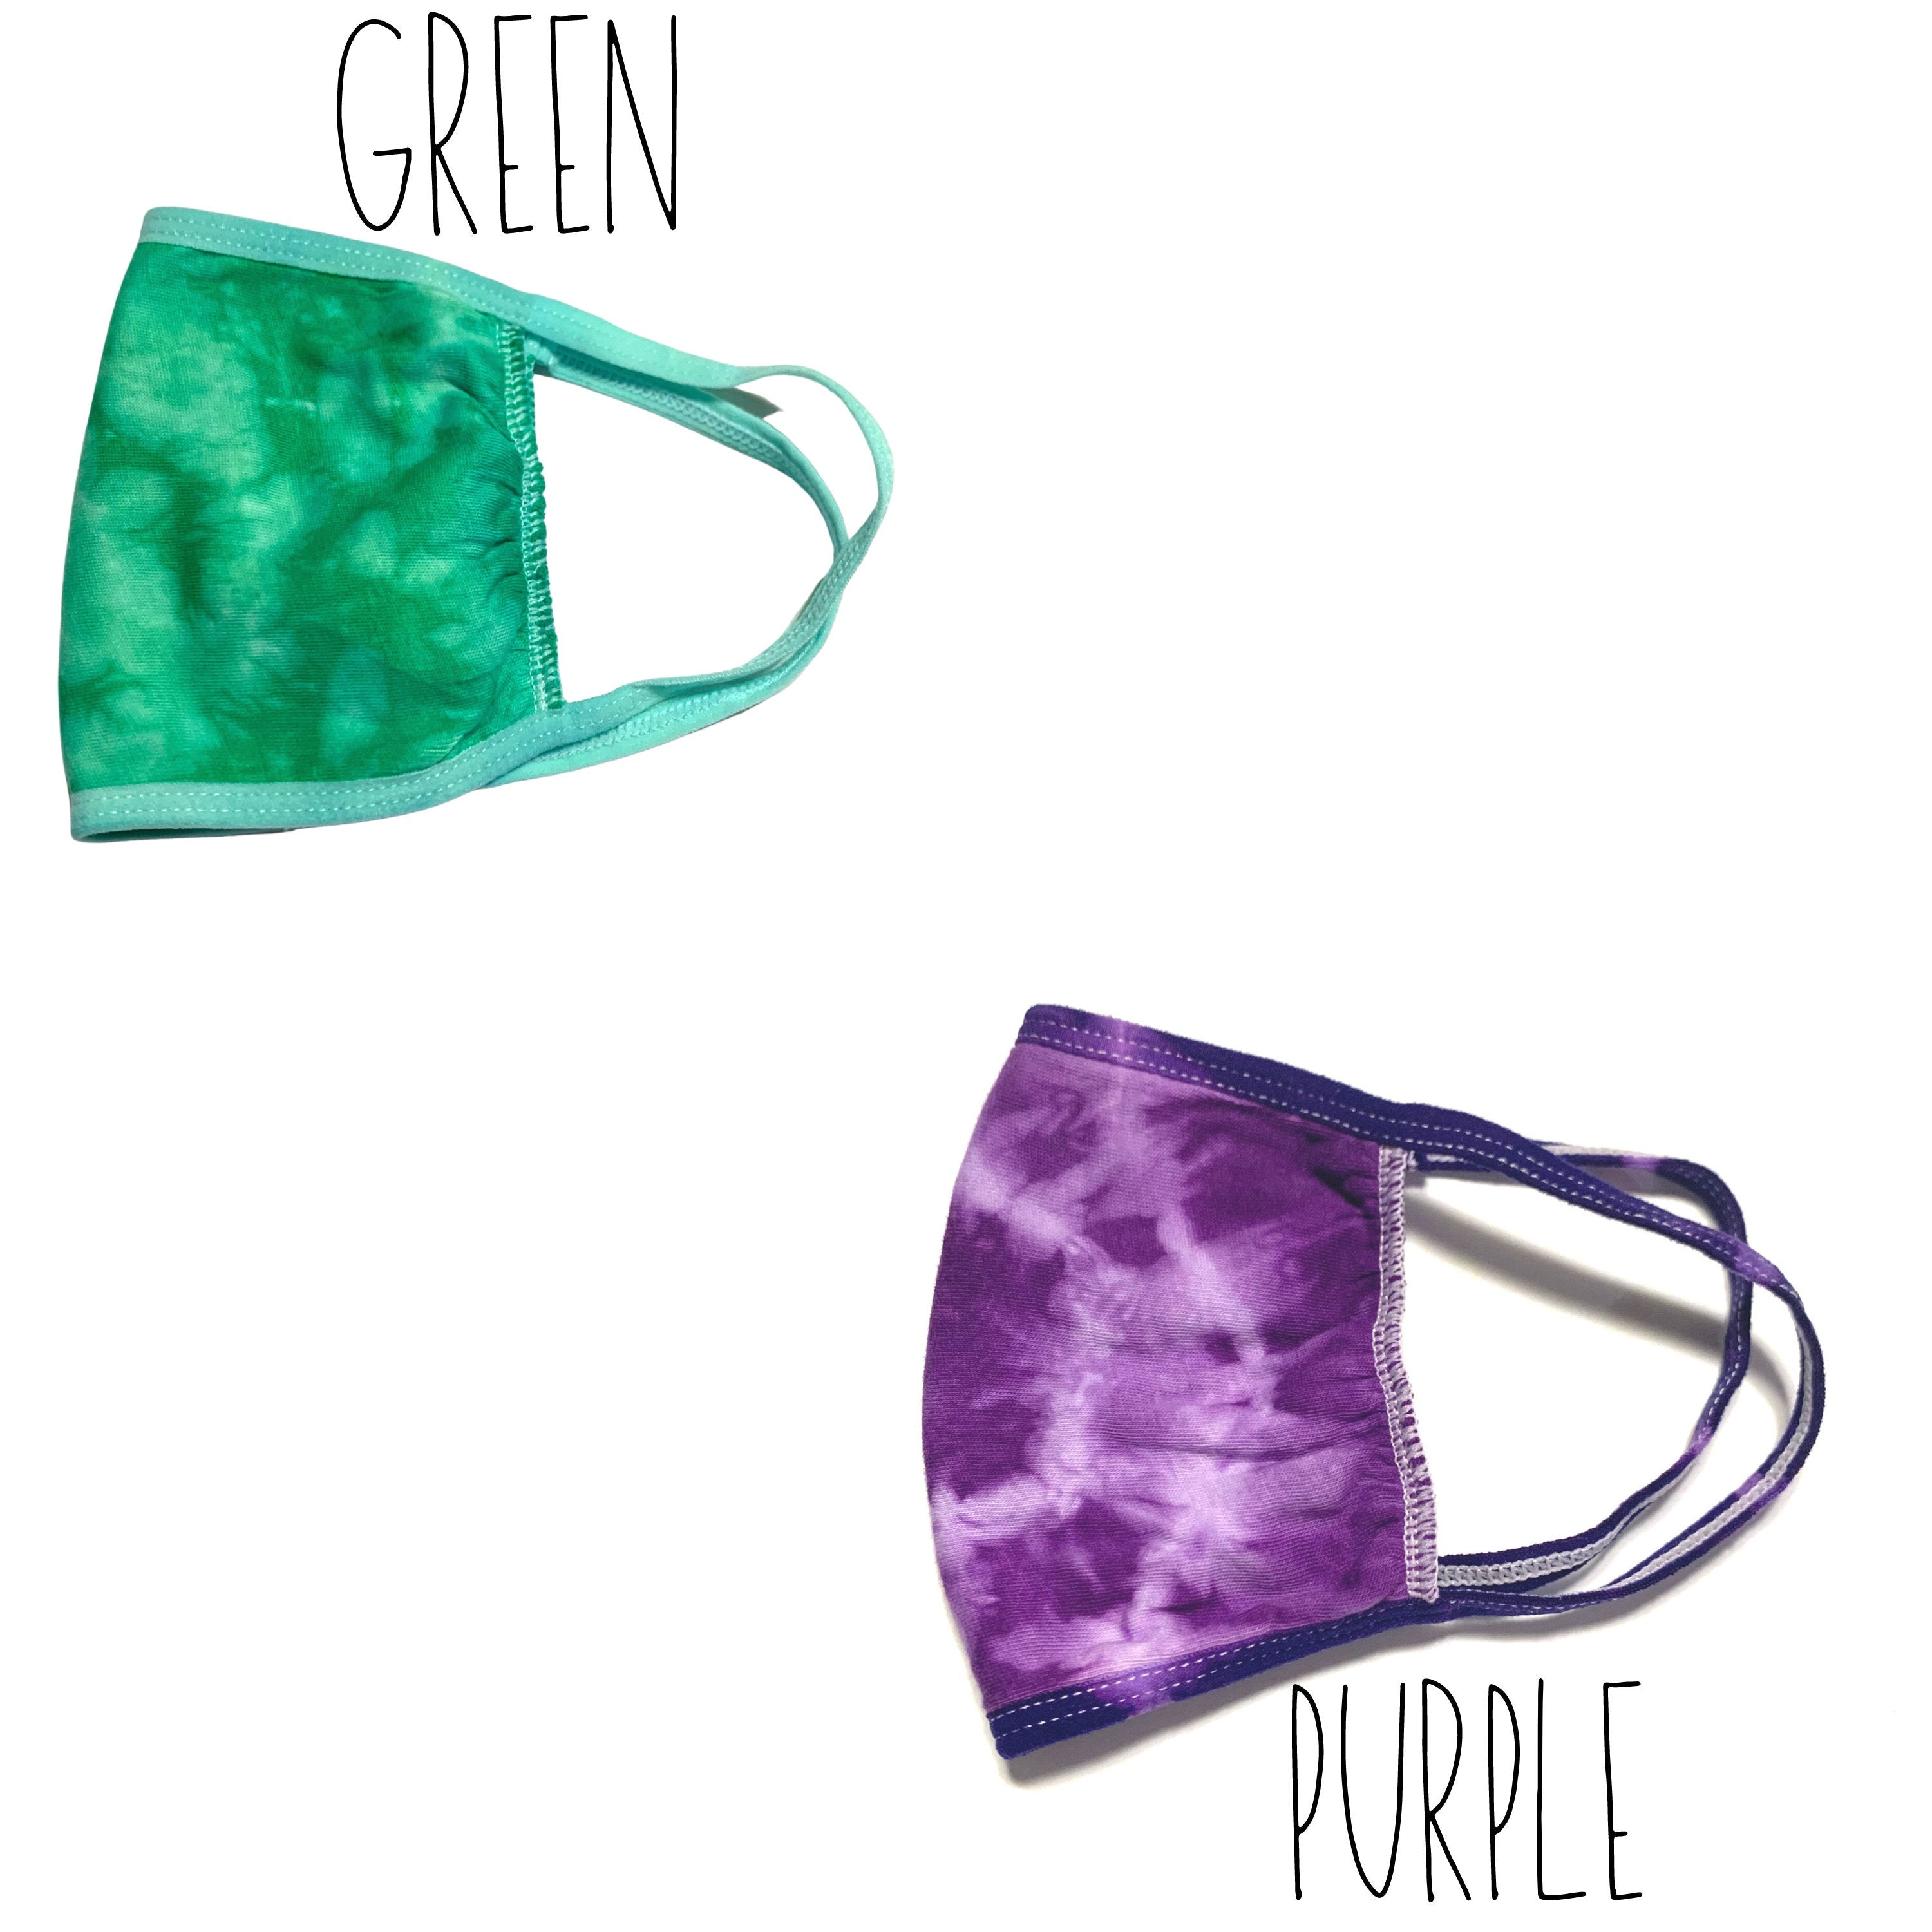 Tie Dye Face Mask, Washable Tie-Dye Mask, Reusable Tie-Dye Face Mask, 100% Cotton Face Mask, Tie-Dye Mask, Tie-Dye Cotton Face Mask,